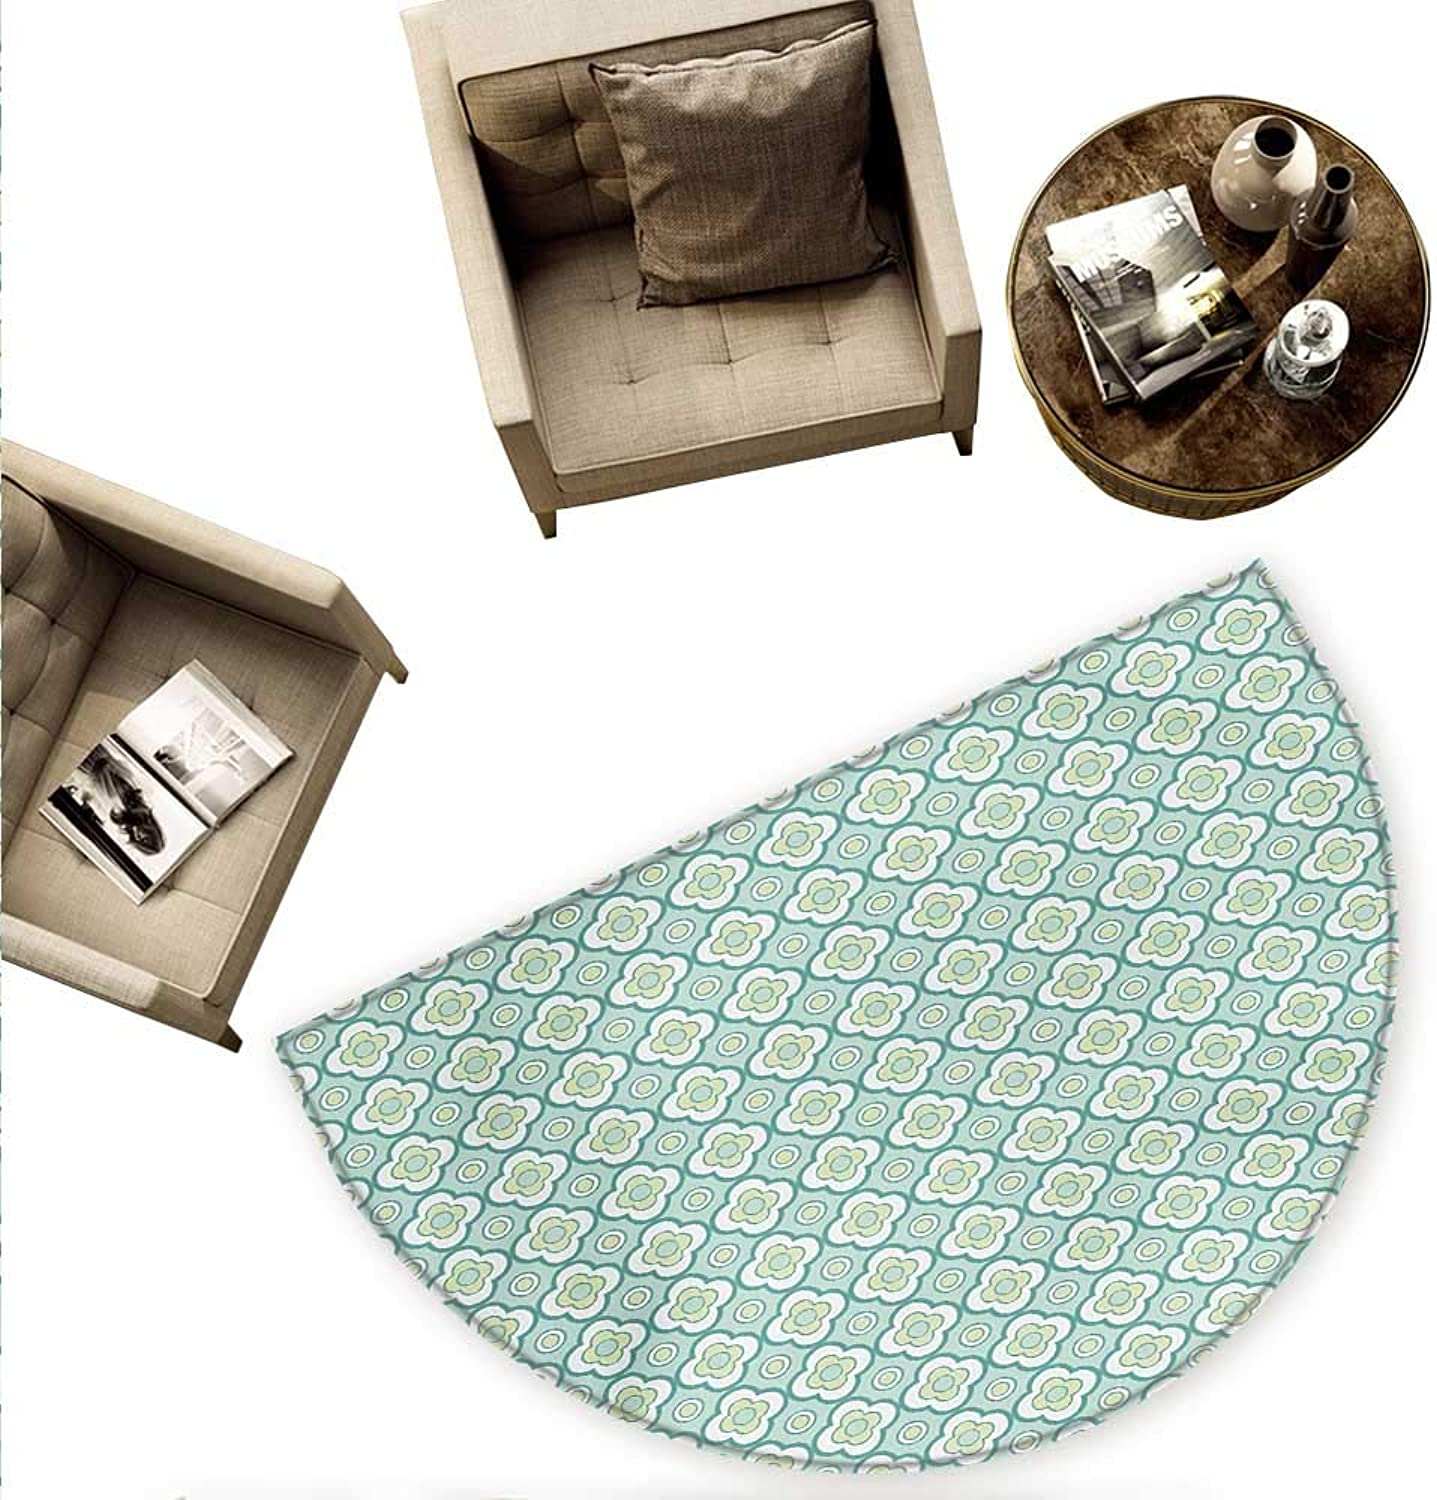 Geometric Semicircular Cushion Floral Pattern with Circles and Curved Shapes Abstract Blooming Nature Entry Door Mat H 78.7  xD 118.1  Pale Green Sea Green